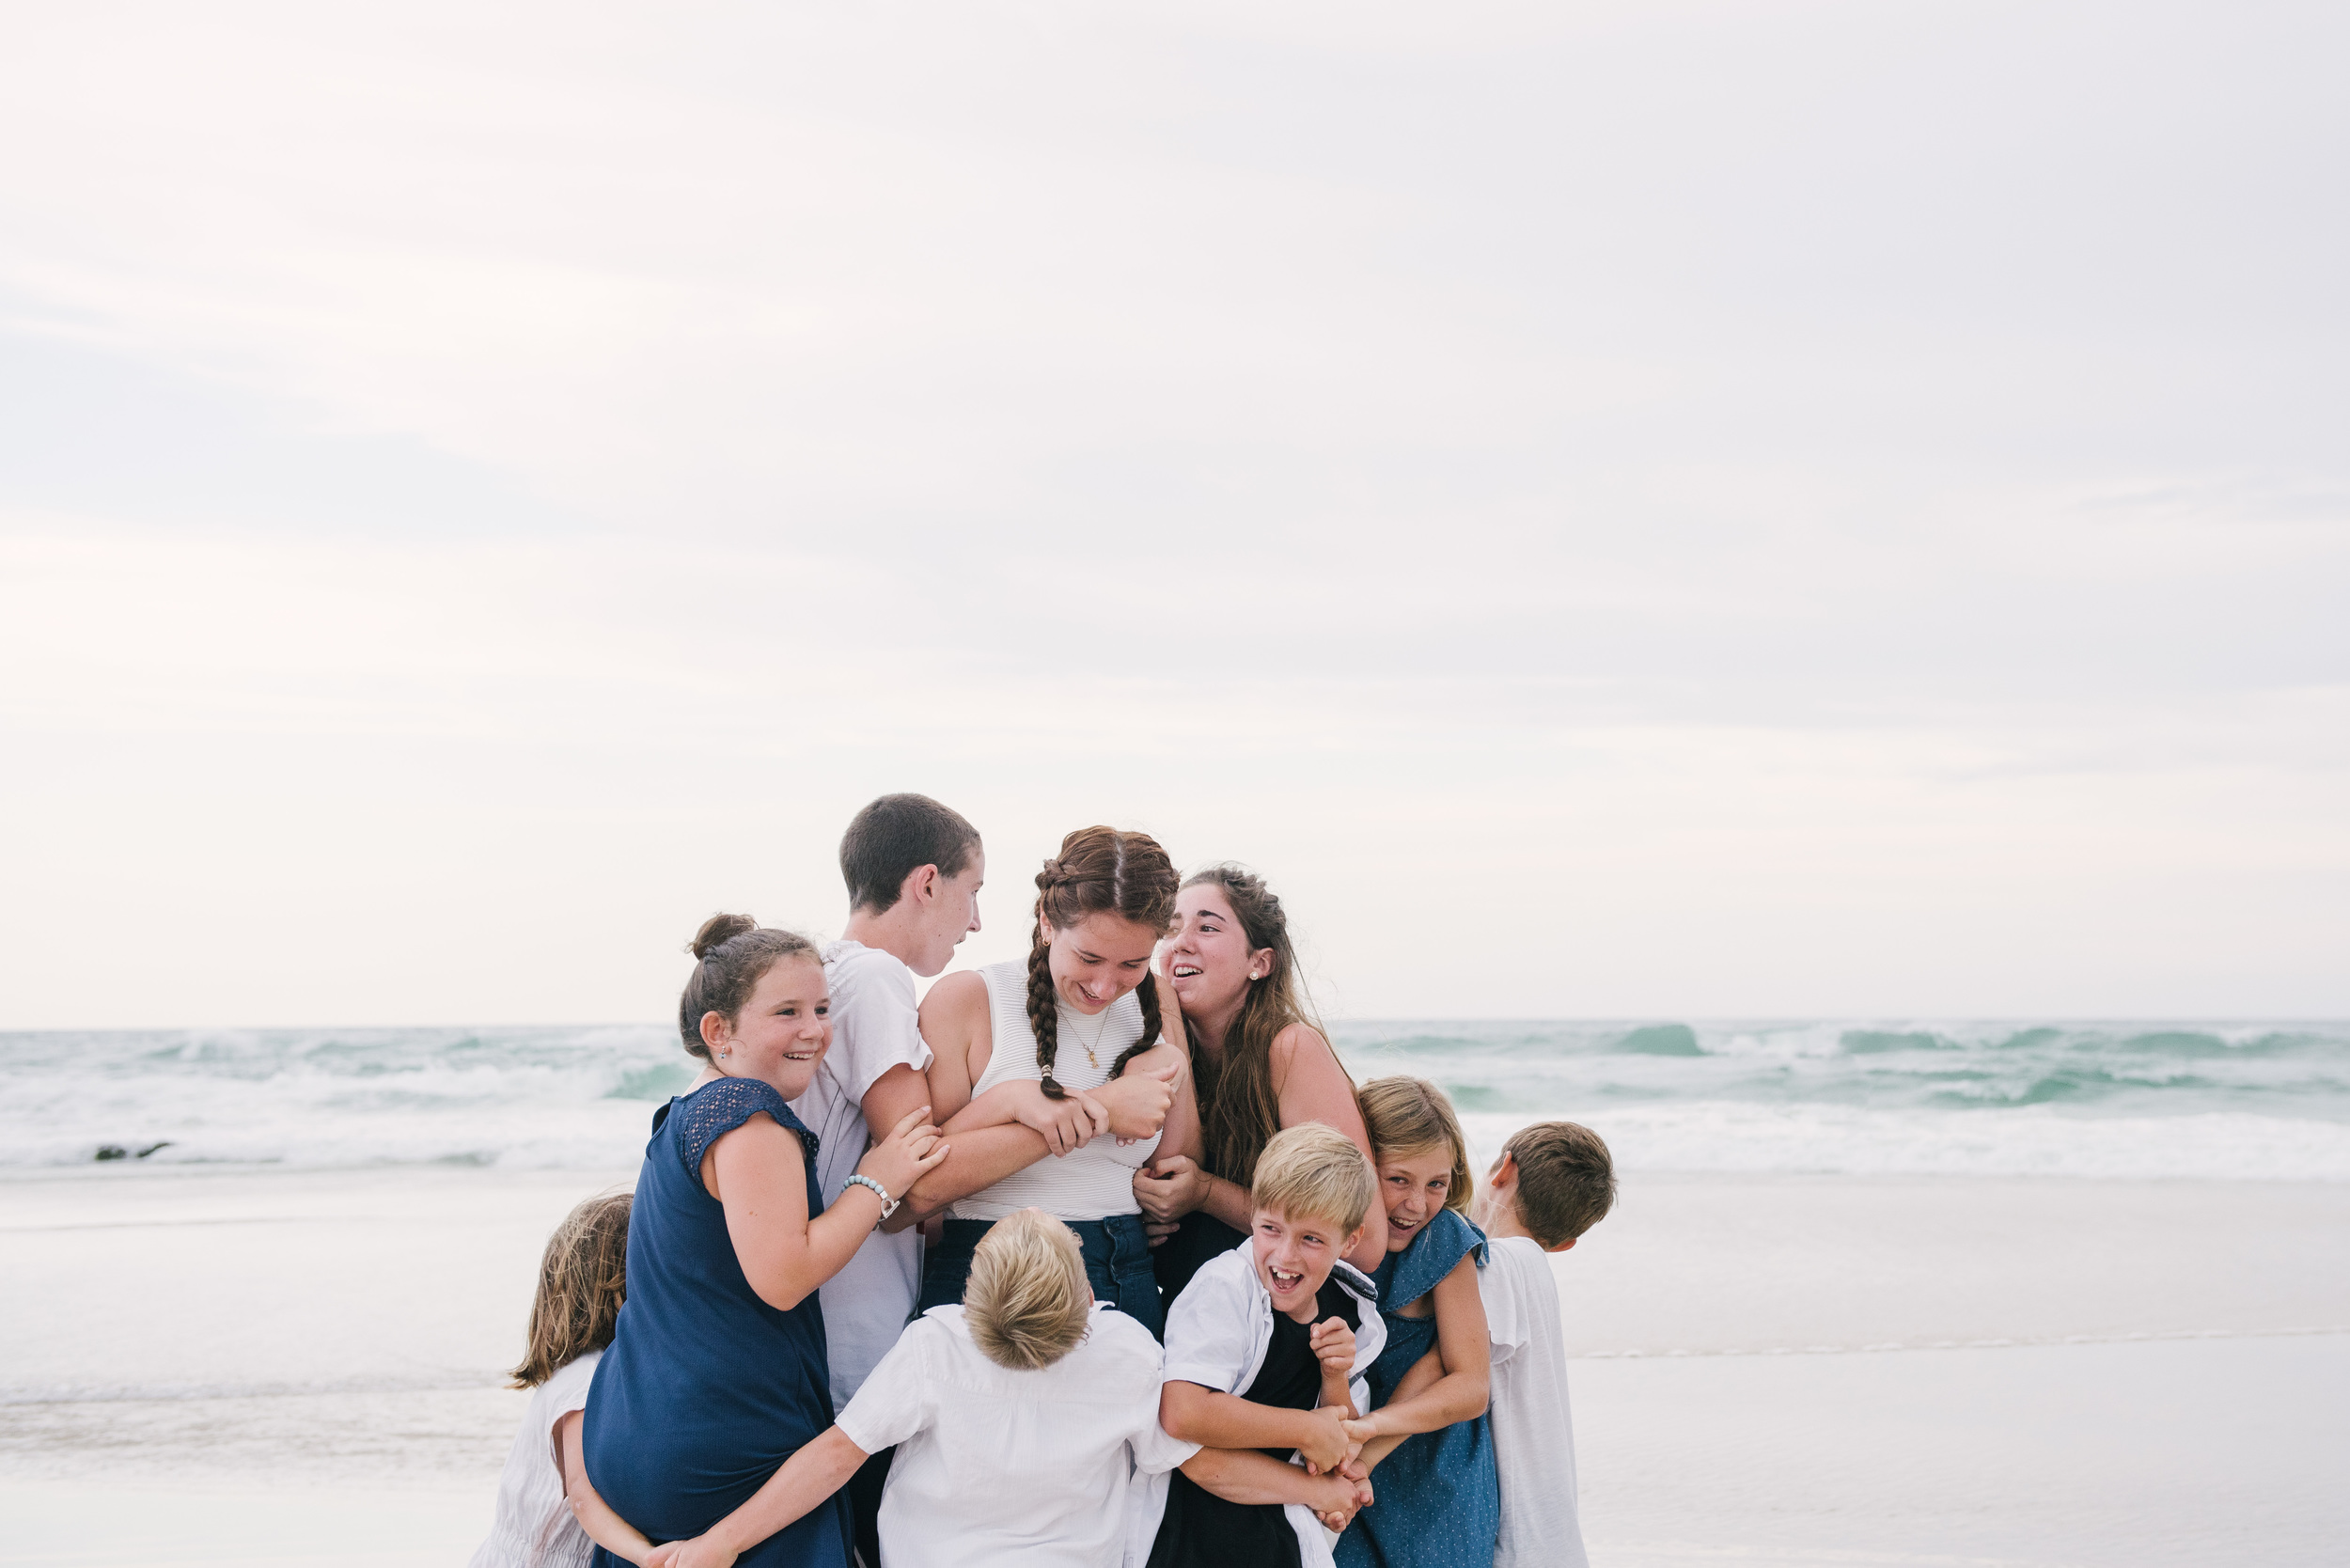 Ness family reunion-family-photography-wedding-photography-family-children-goldcoast-northernNSW-48.jpg